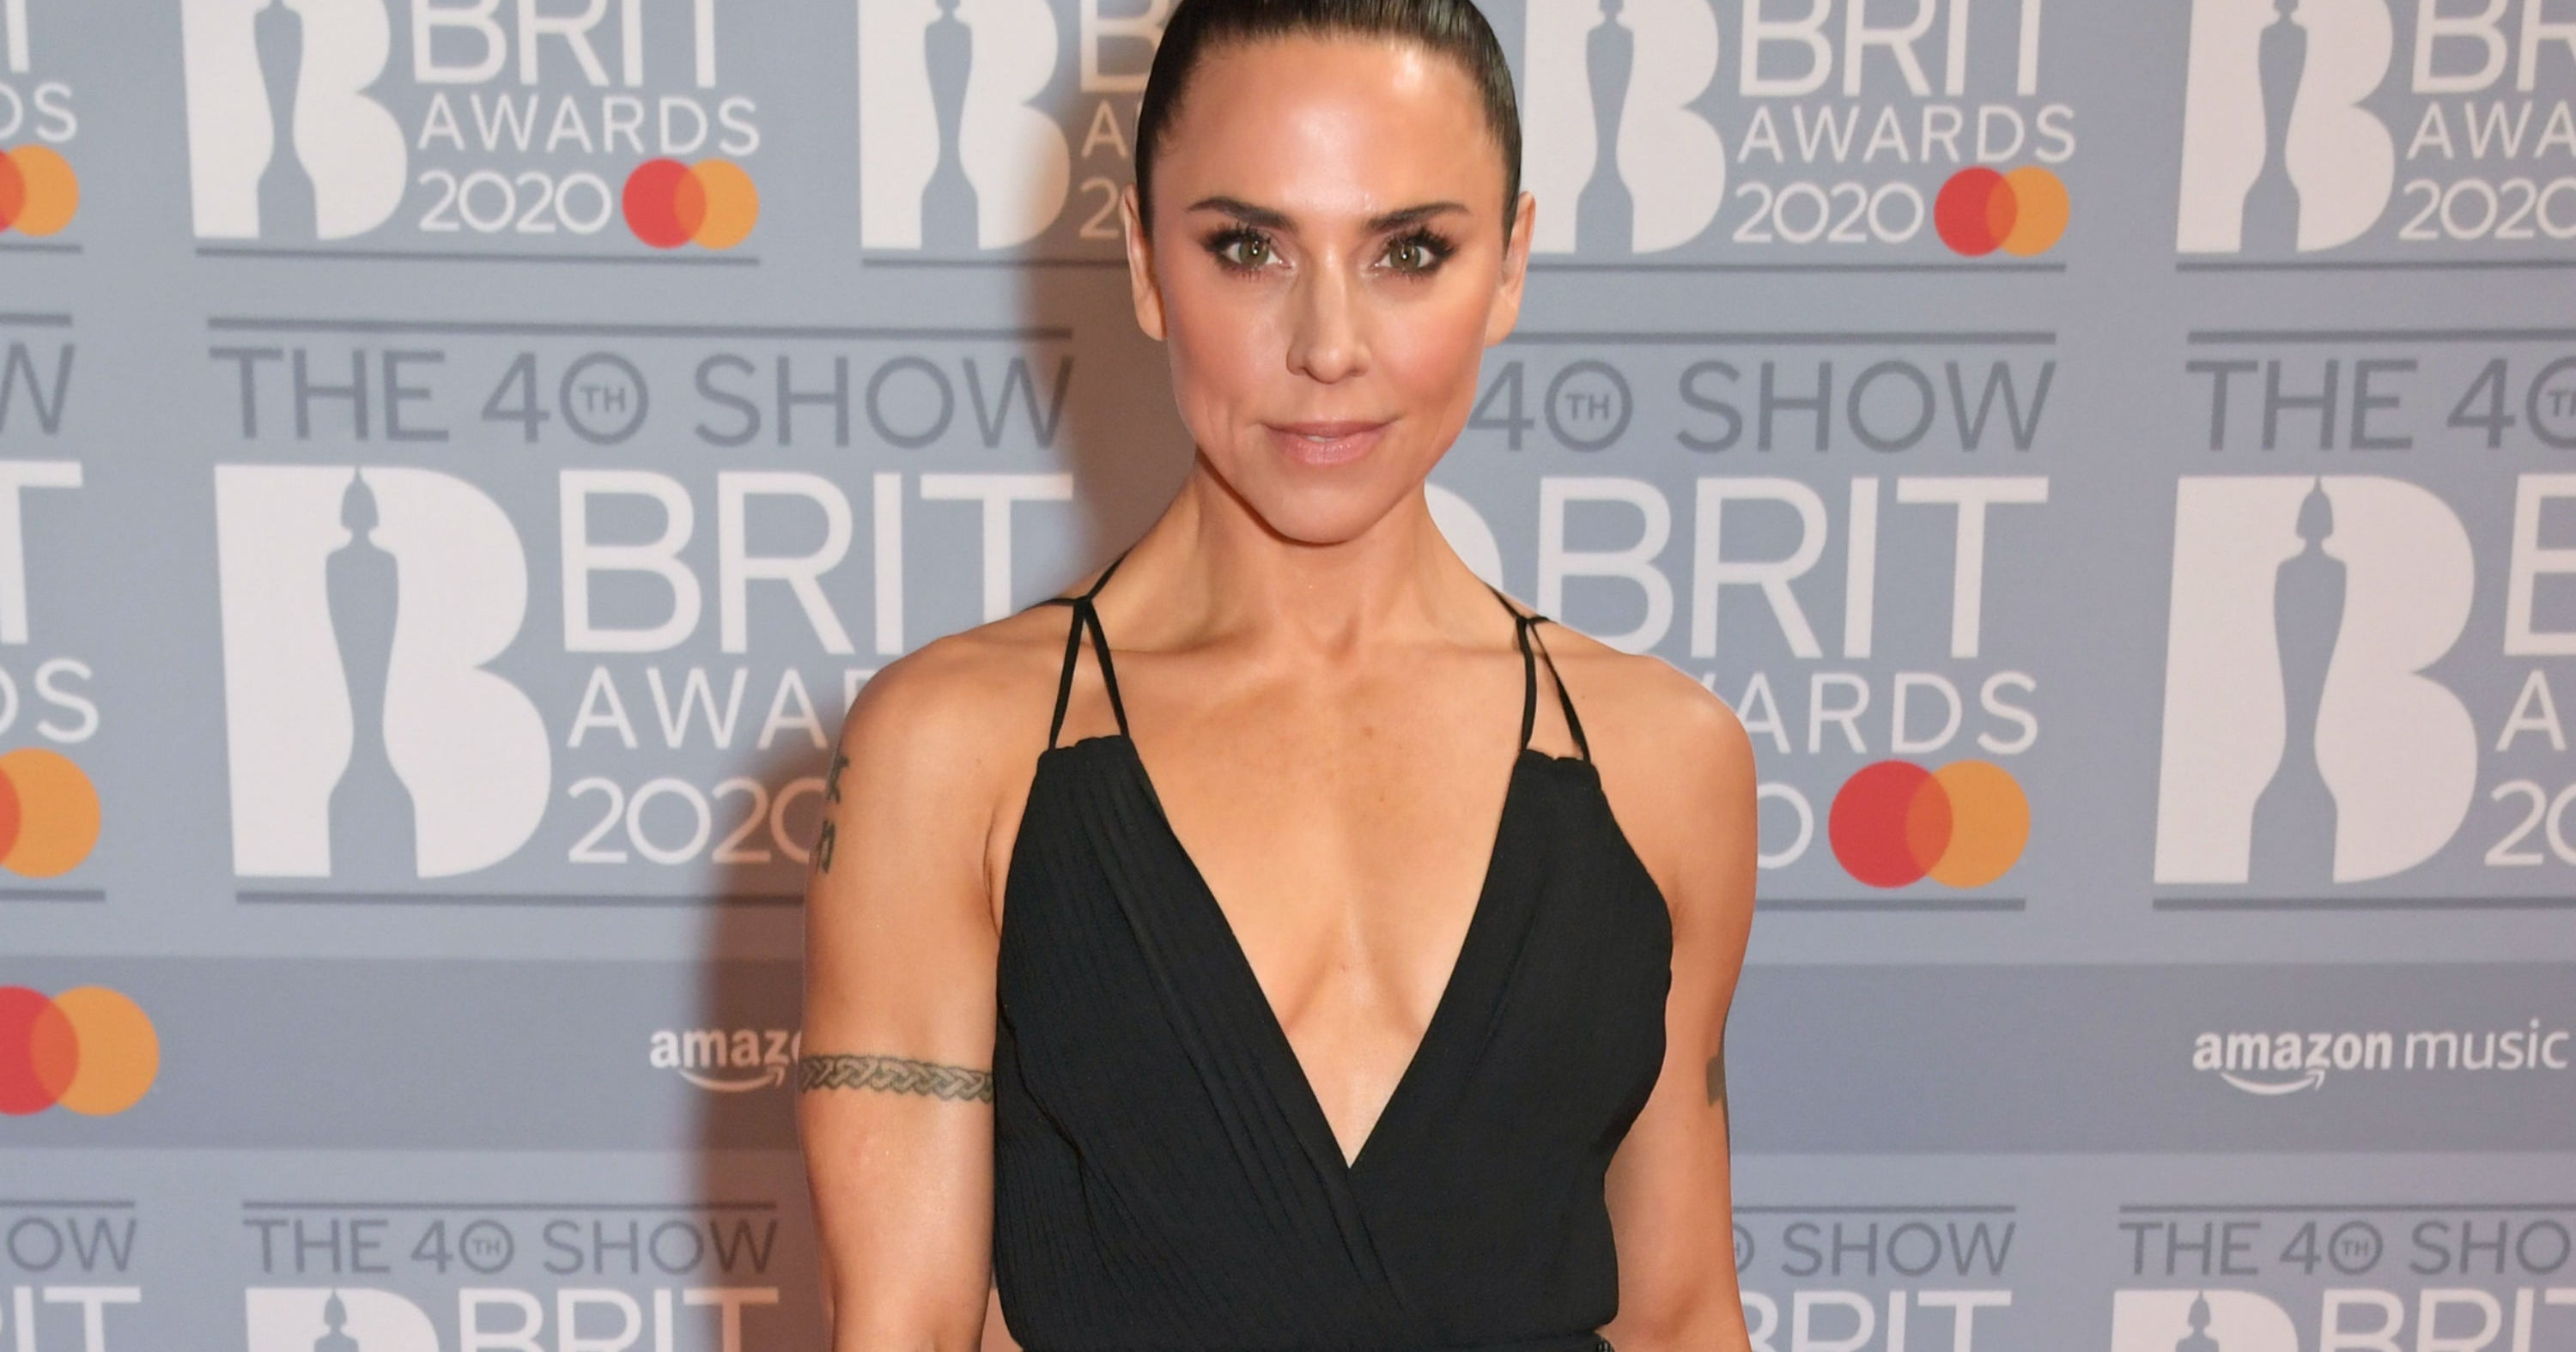 Melanie C Opens Up About Her Mental Health Issues In The Spice Girls